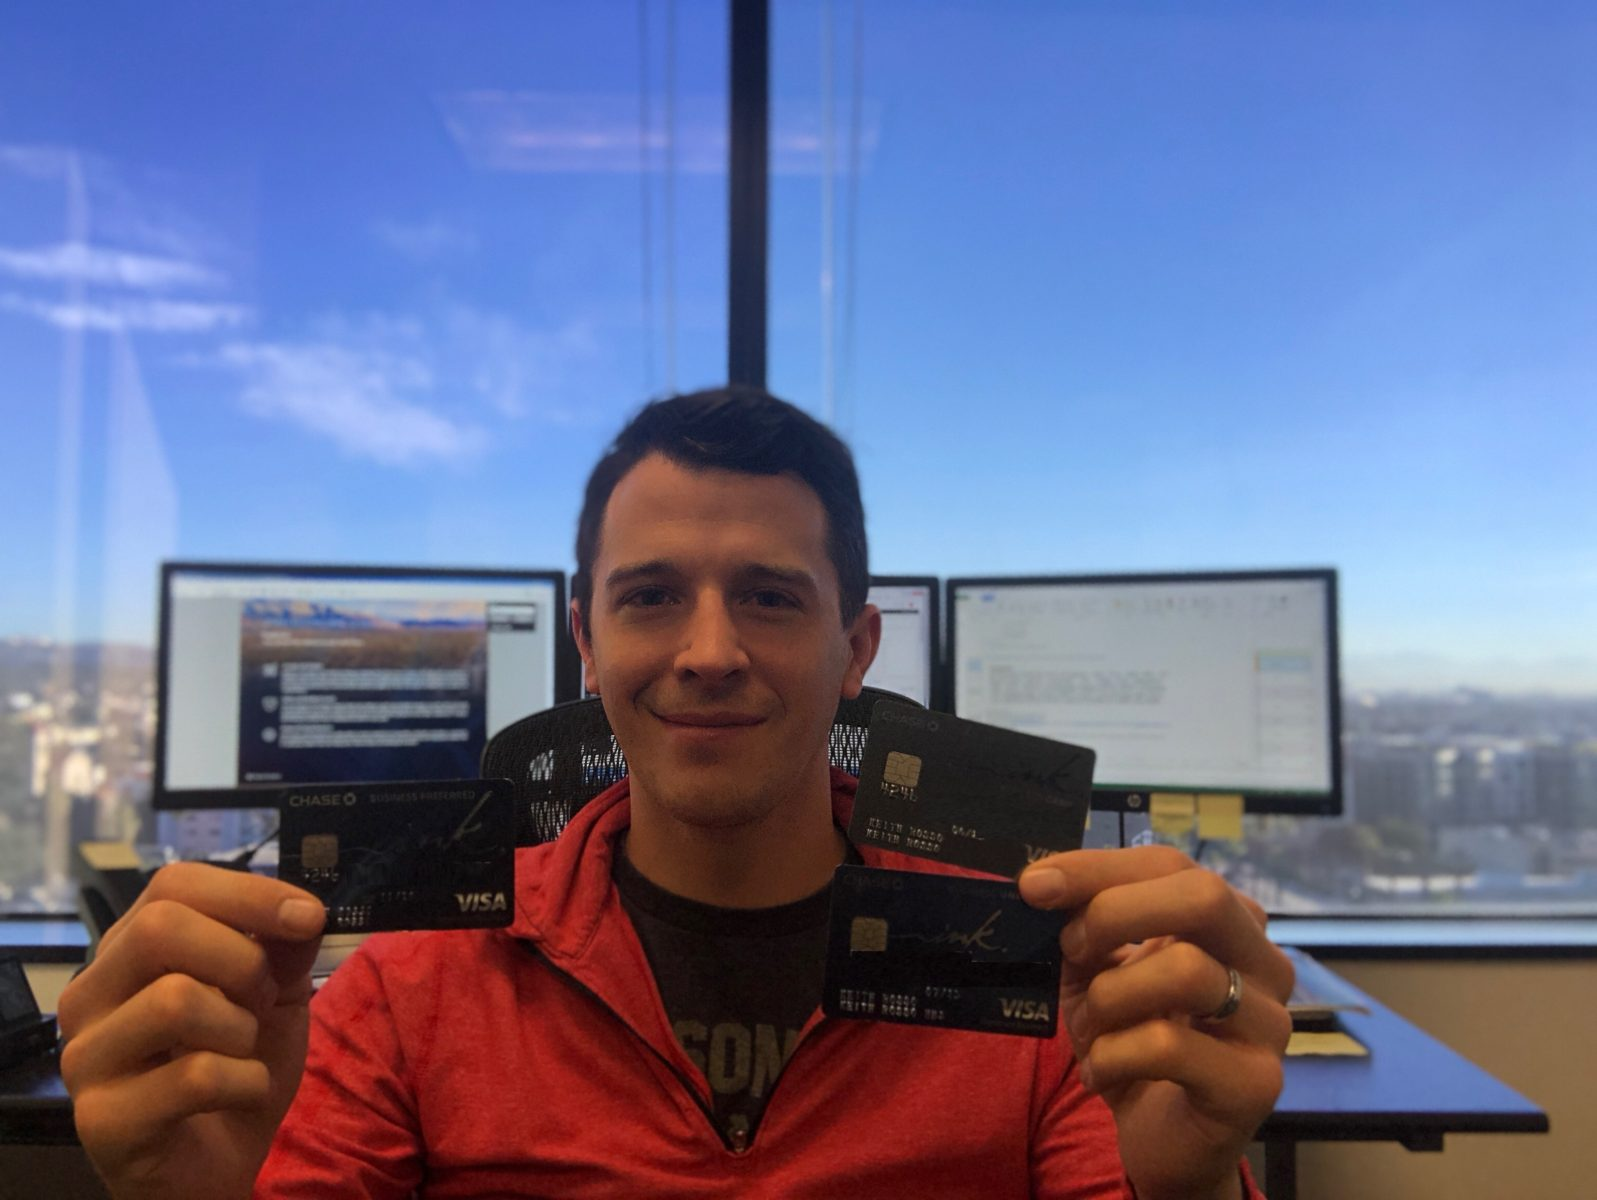 Million Mile Secrets Team Member Keith Uses All 3 Chase Ink Cards. The Signup Bonuses Alone Earned Him 180,000 Chase Ultimate Rewards Points Worth $2,250.